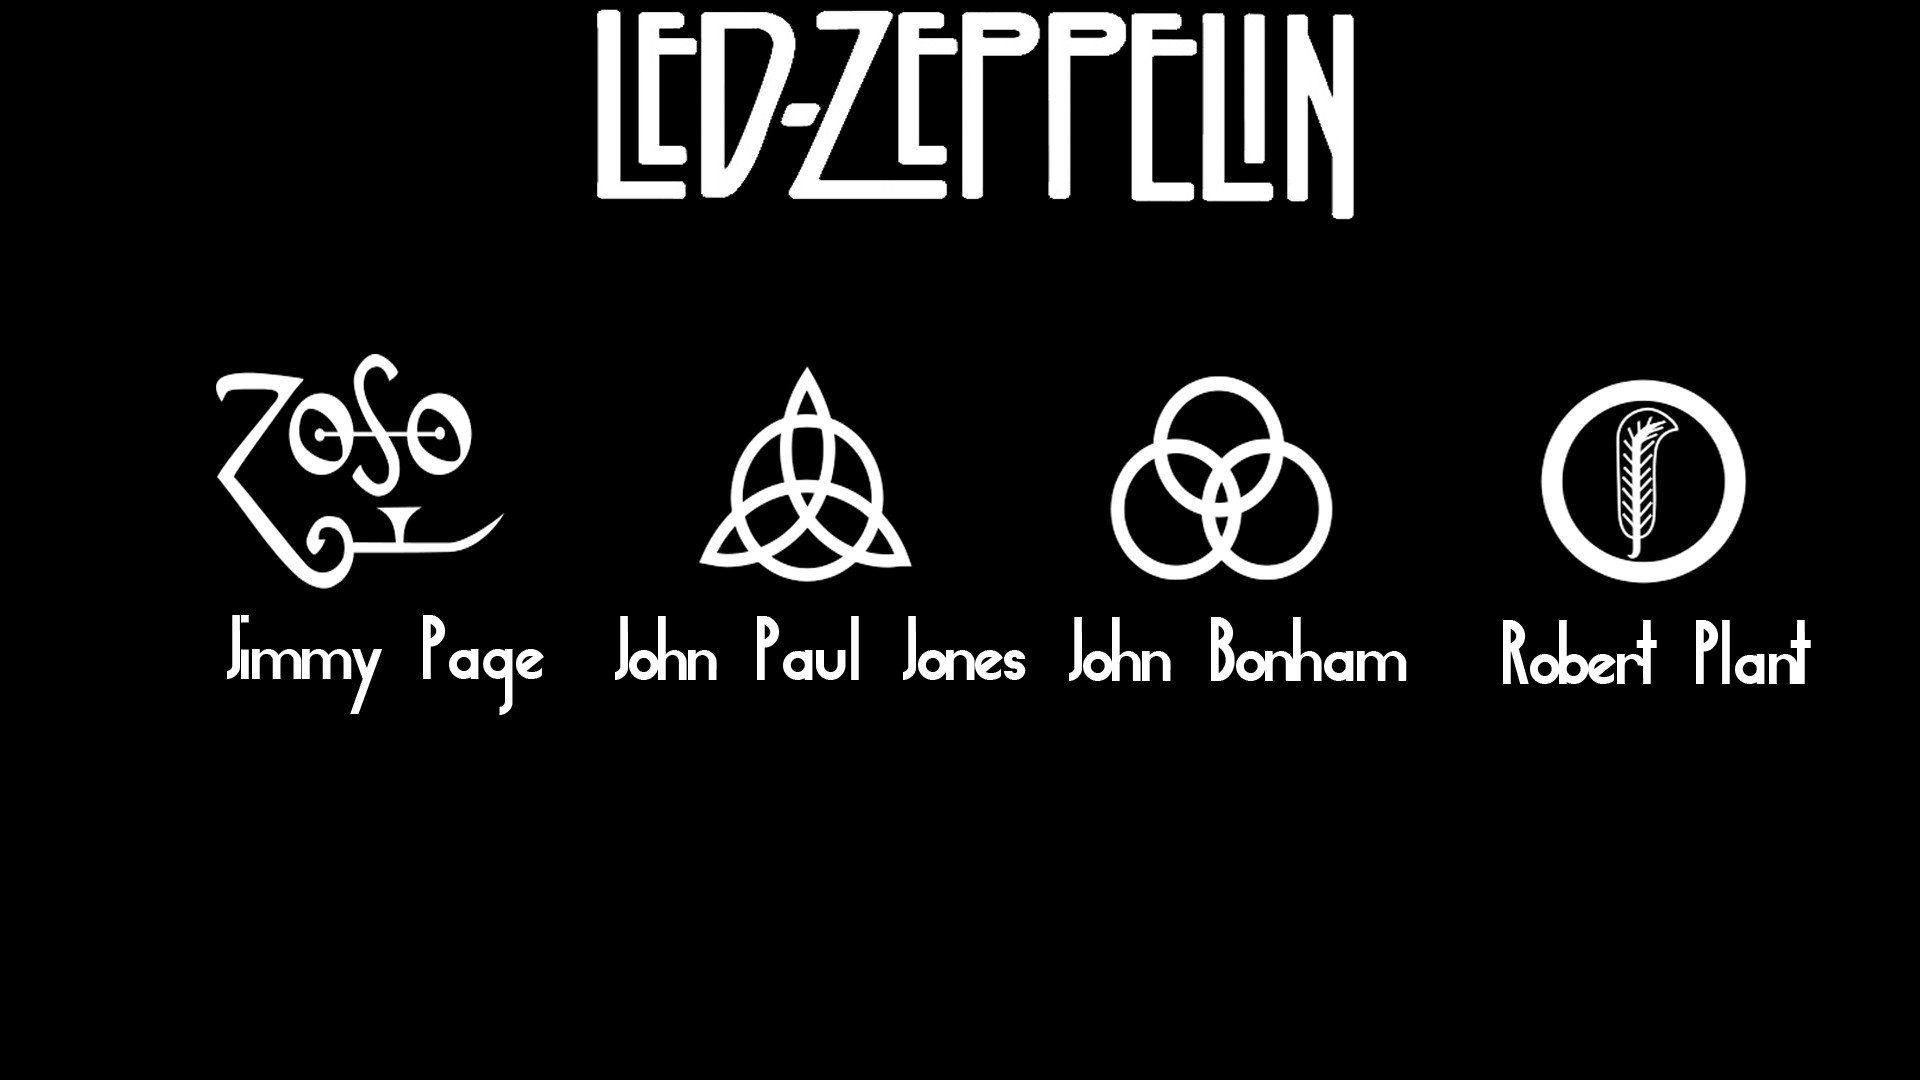 Led Zeppelin Backgrounds Free Download By Annelien Gregoletti